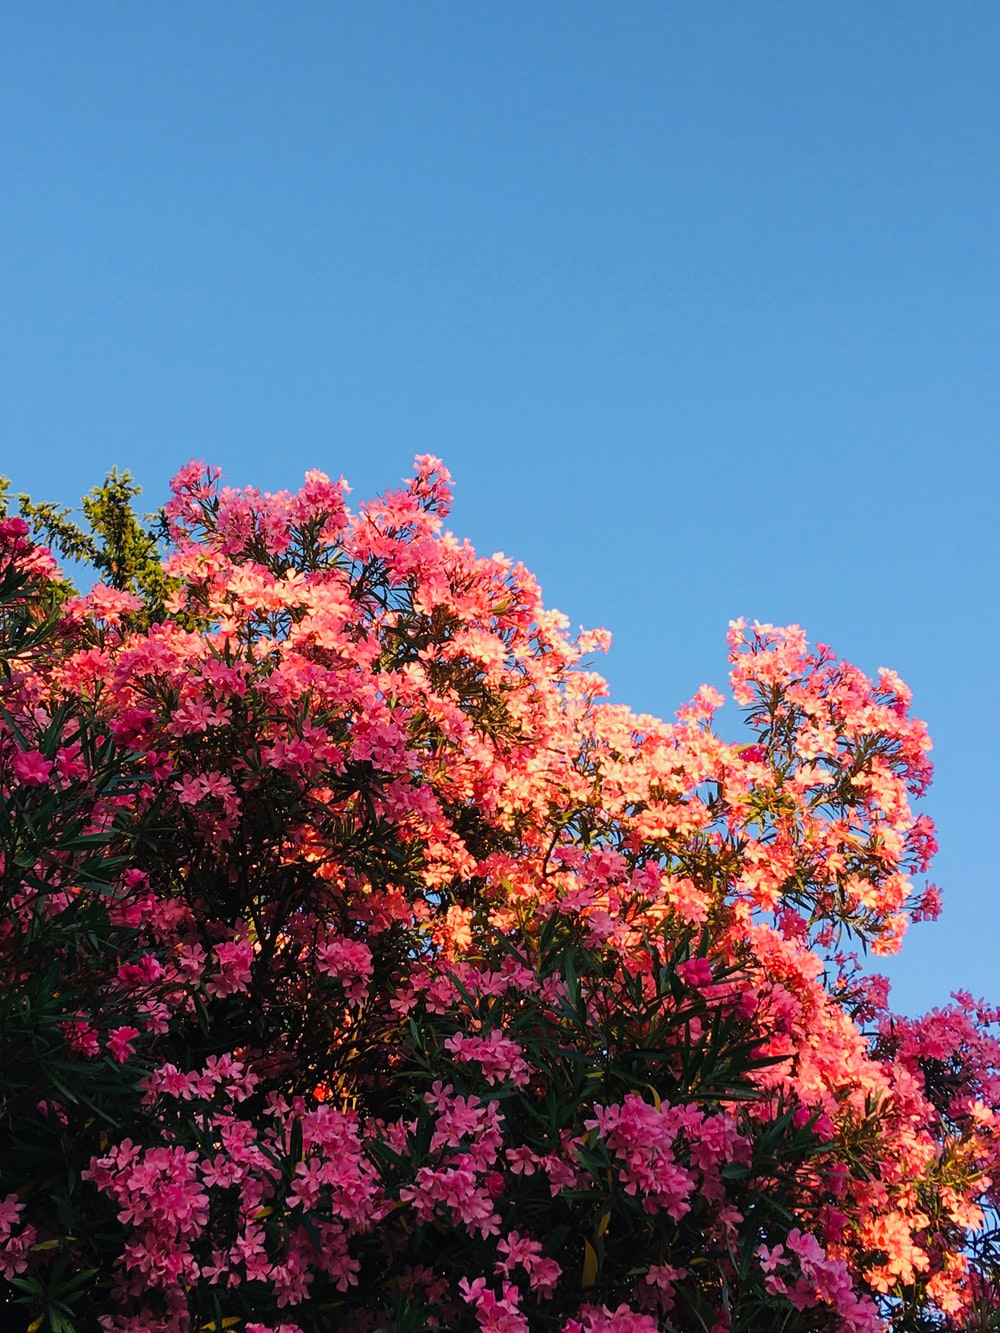 pink and red flowers under blue sky during daytime